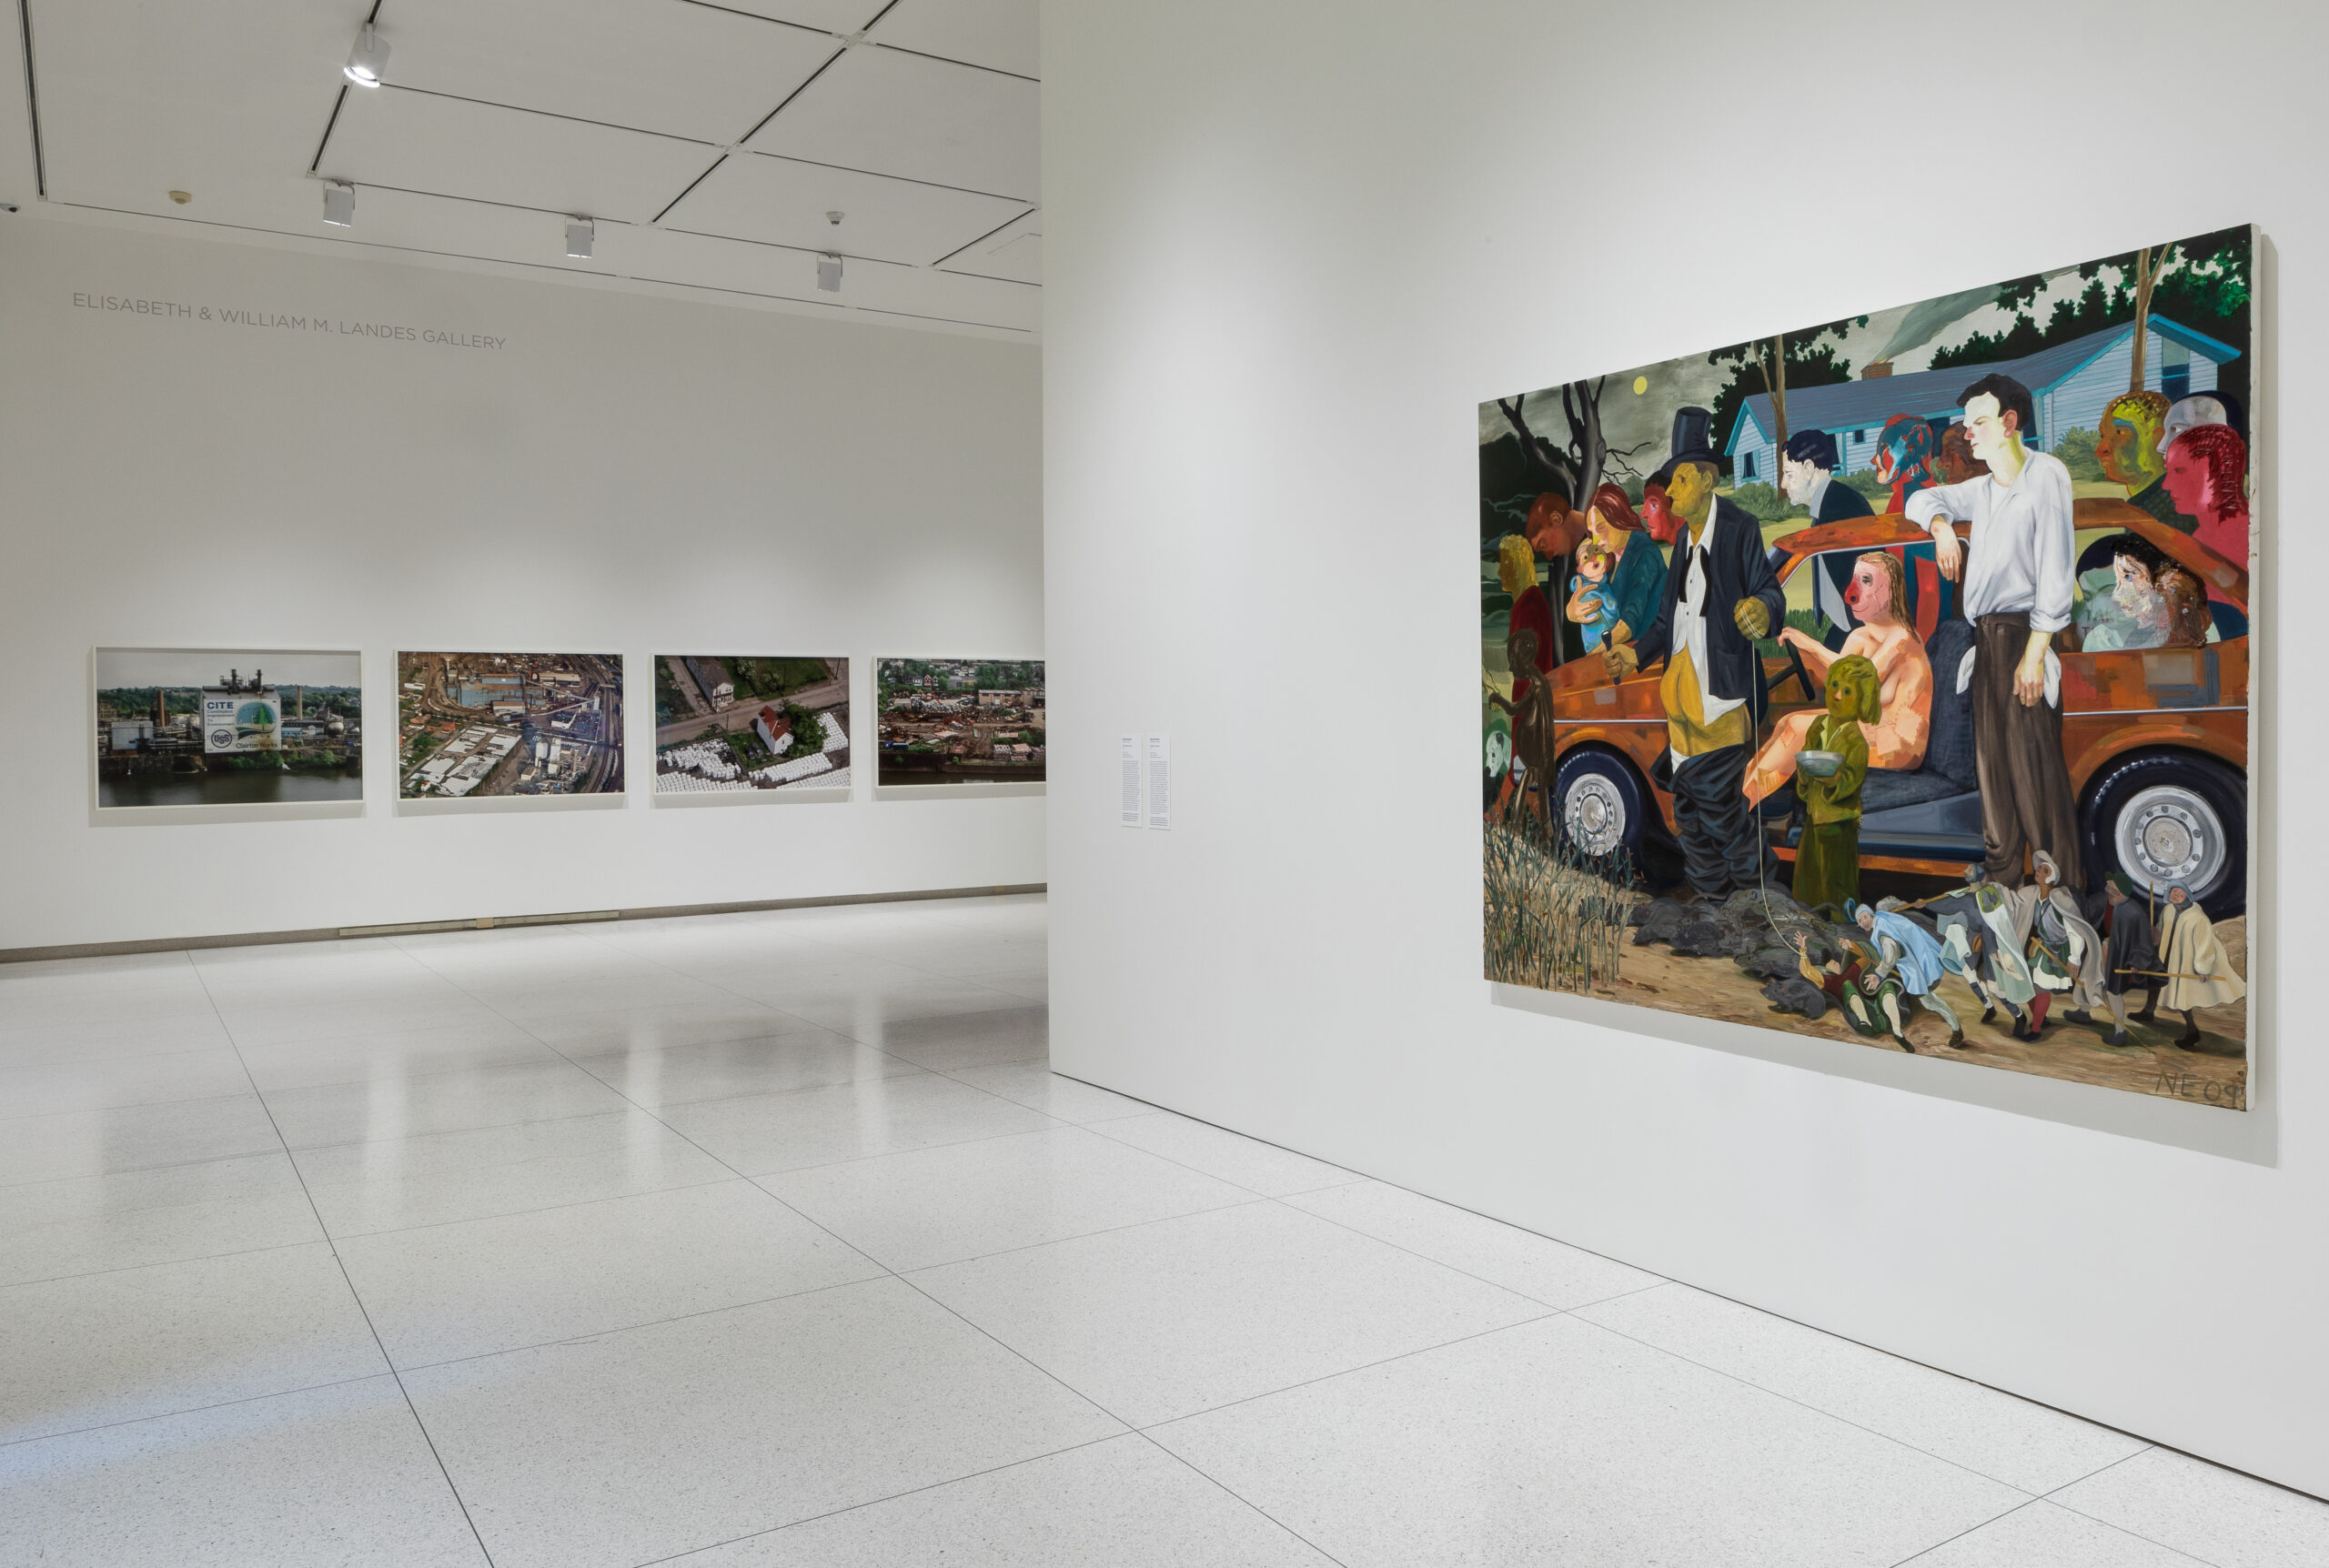 Gallery installation with a vibrant comic painting and aerial photographs.